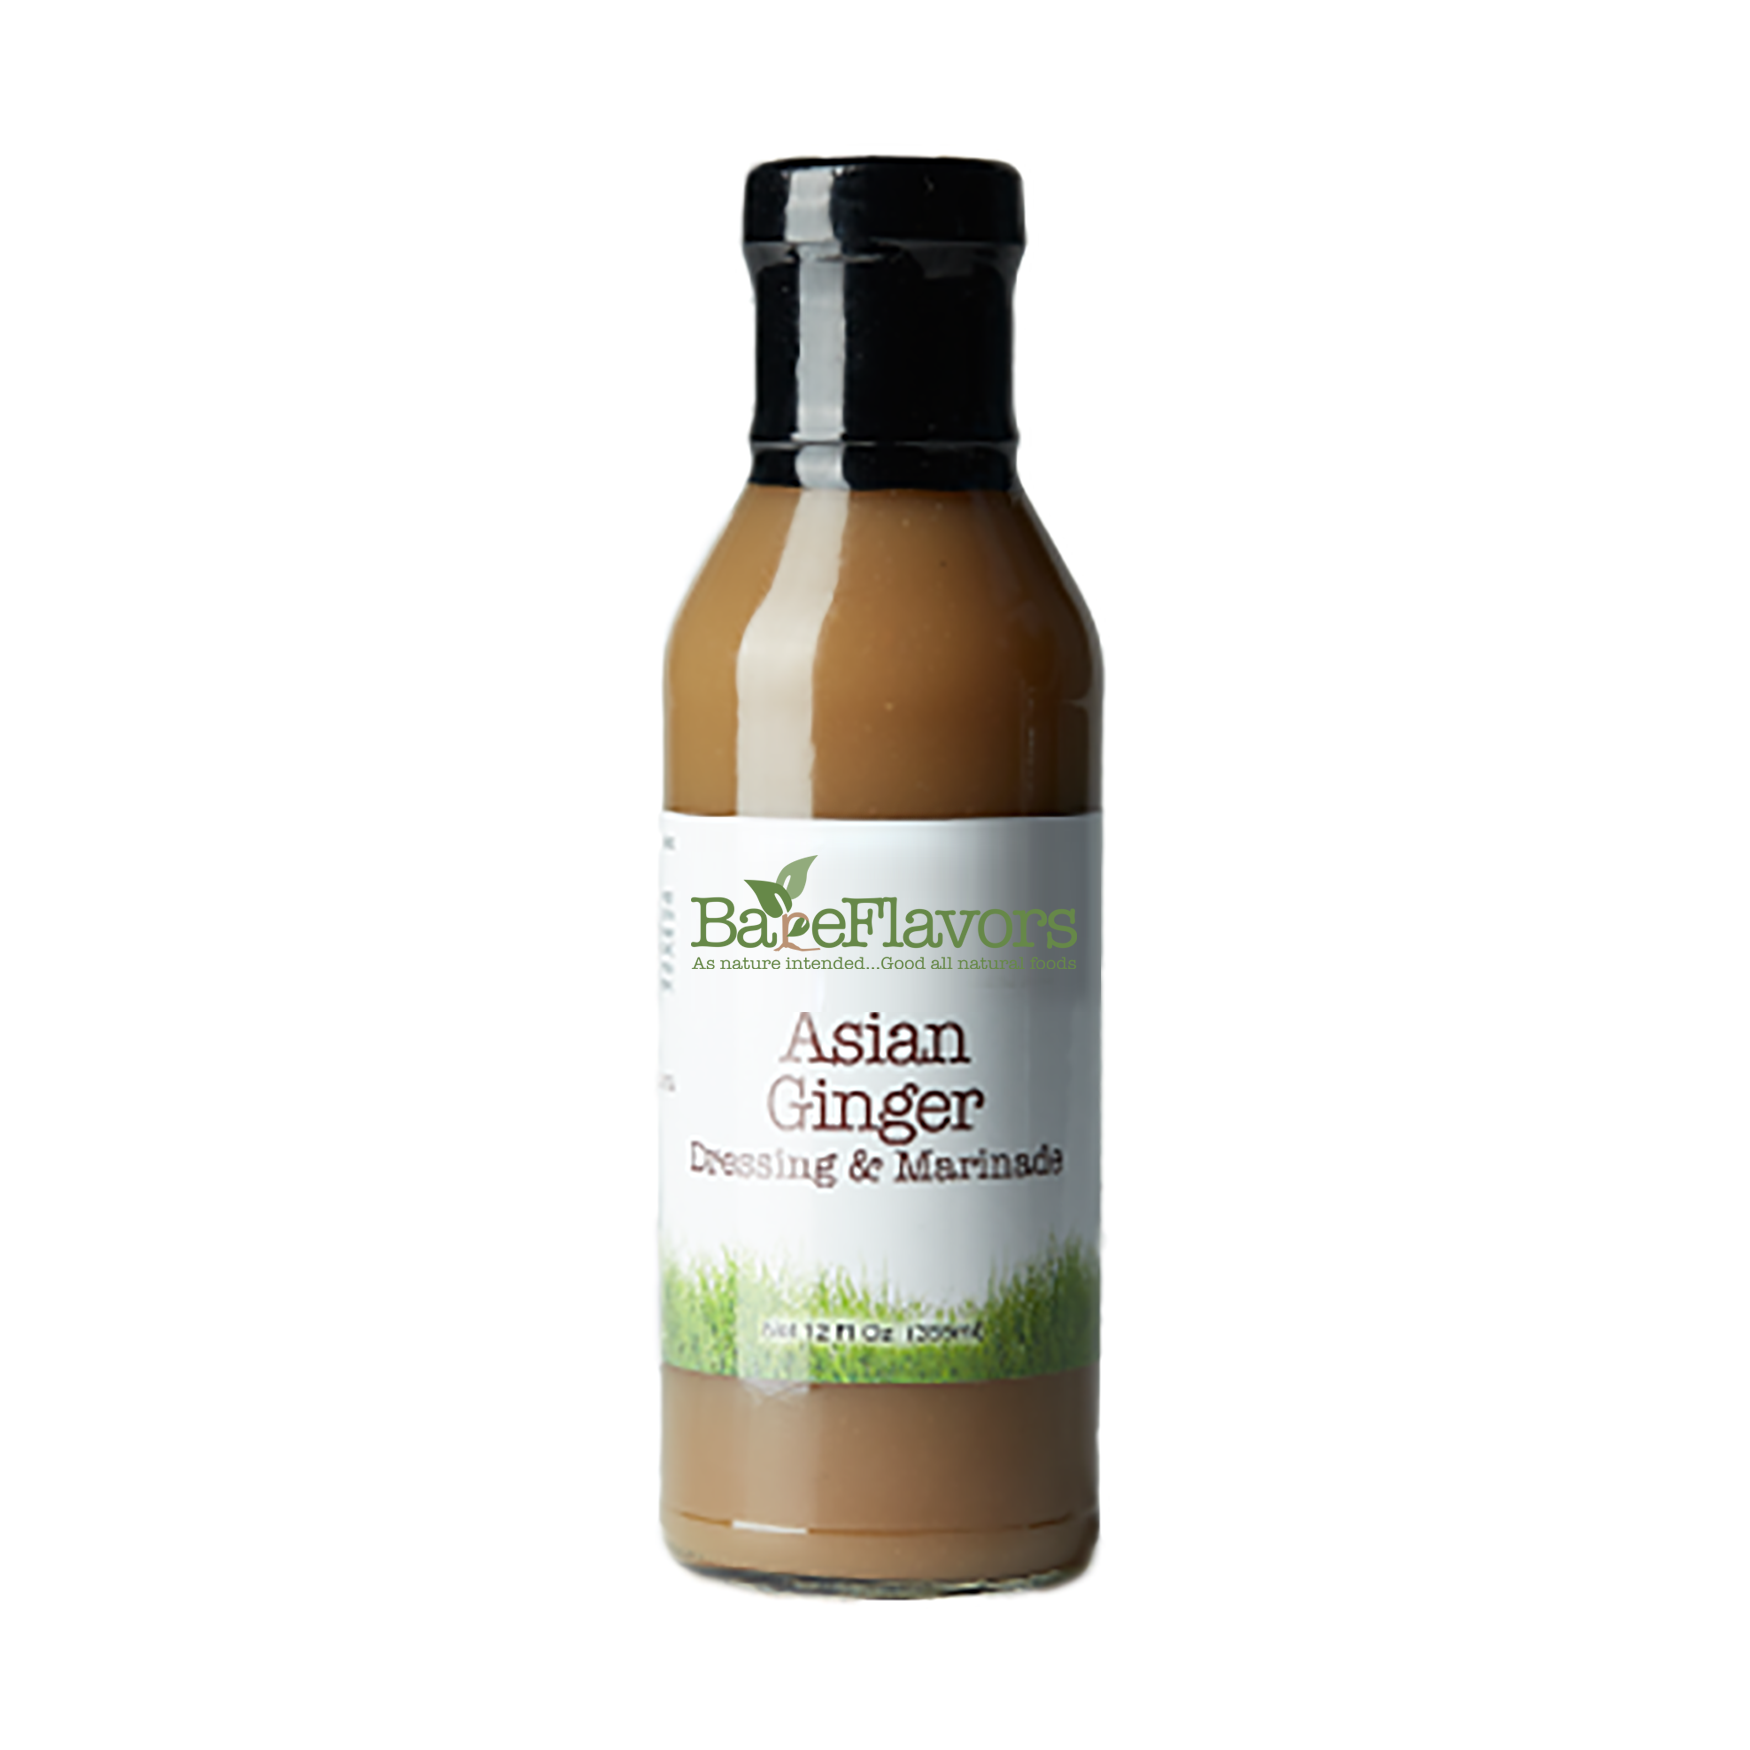 Asian Ginger Dressing Marinade Bare Flavors Inc